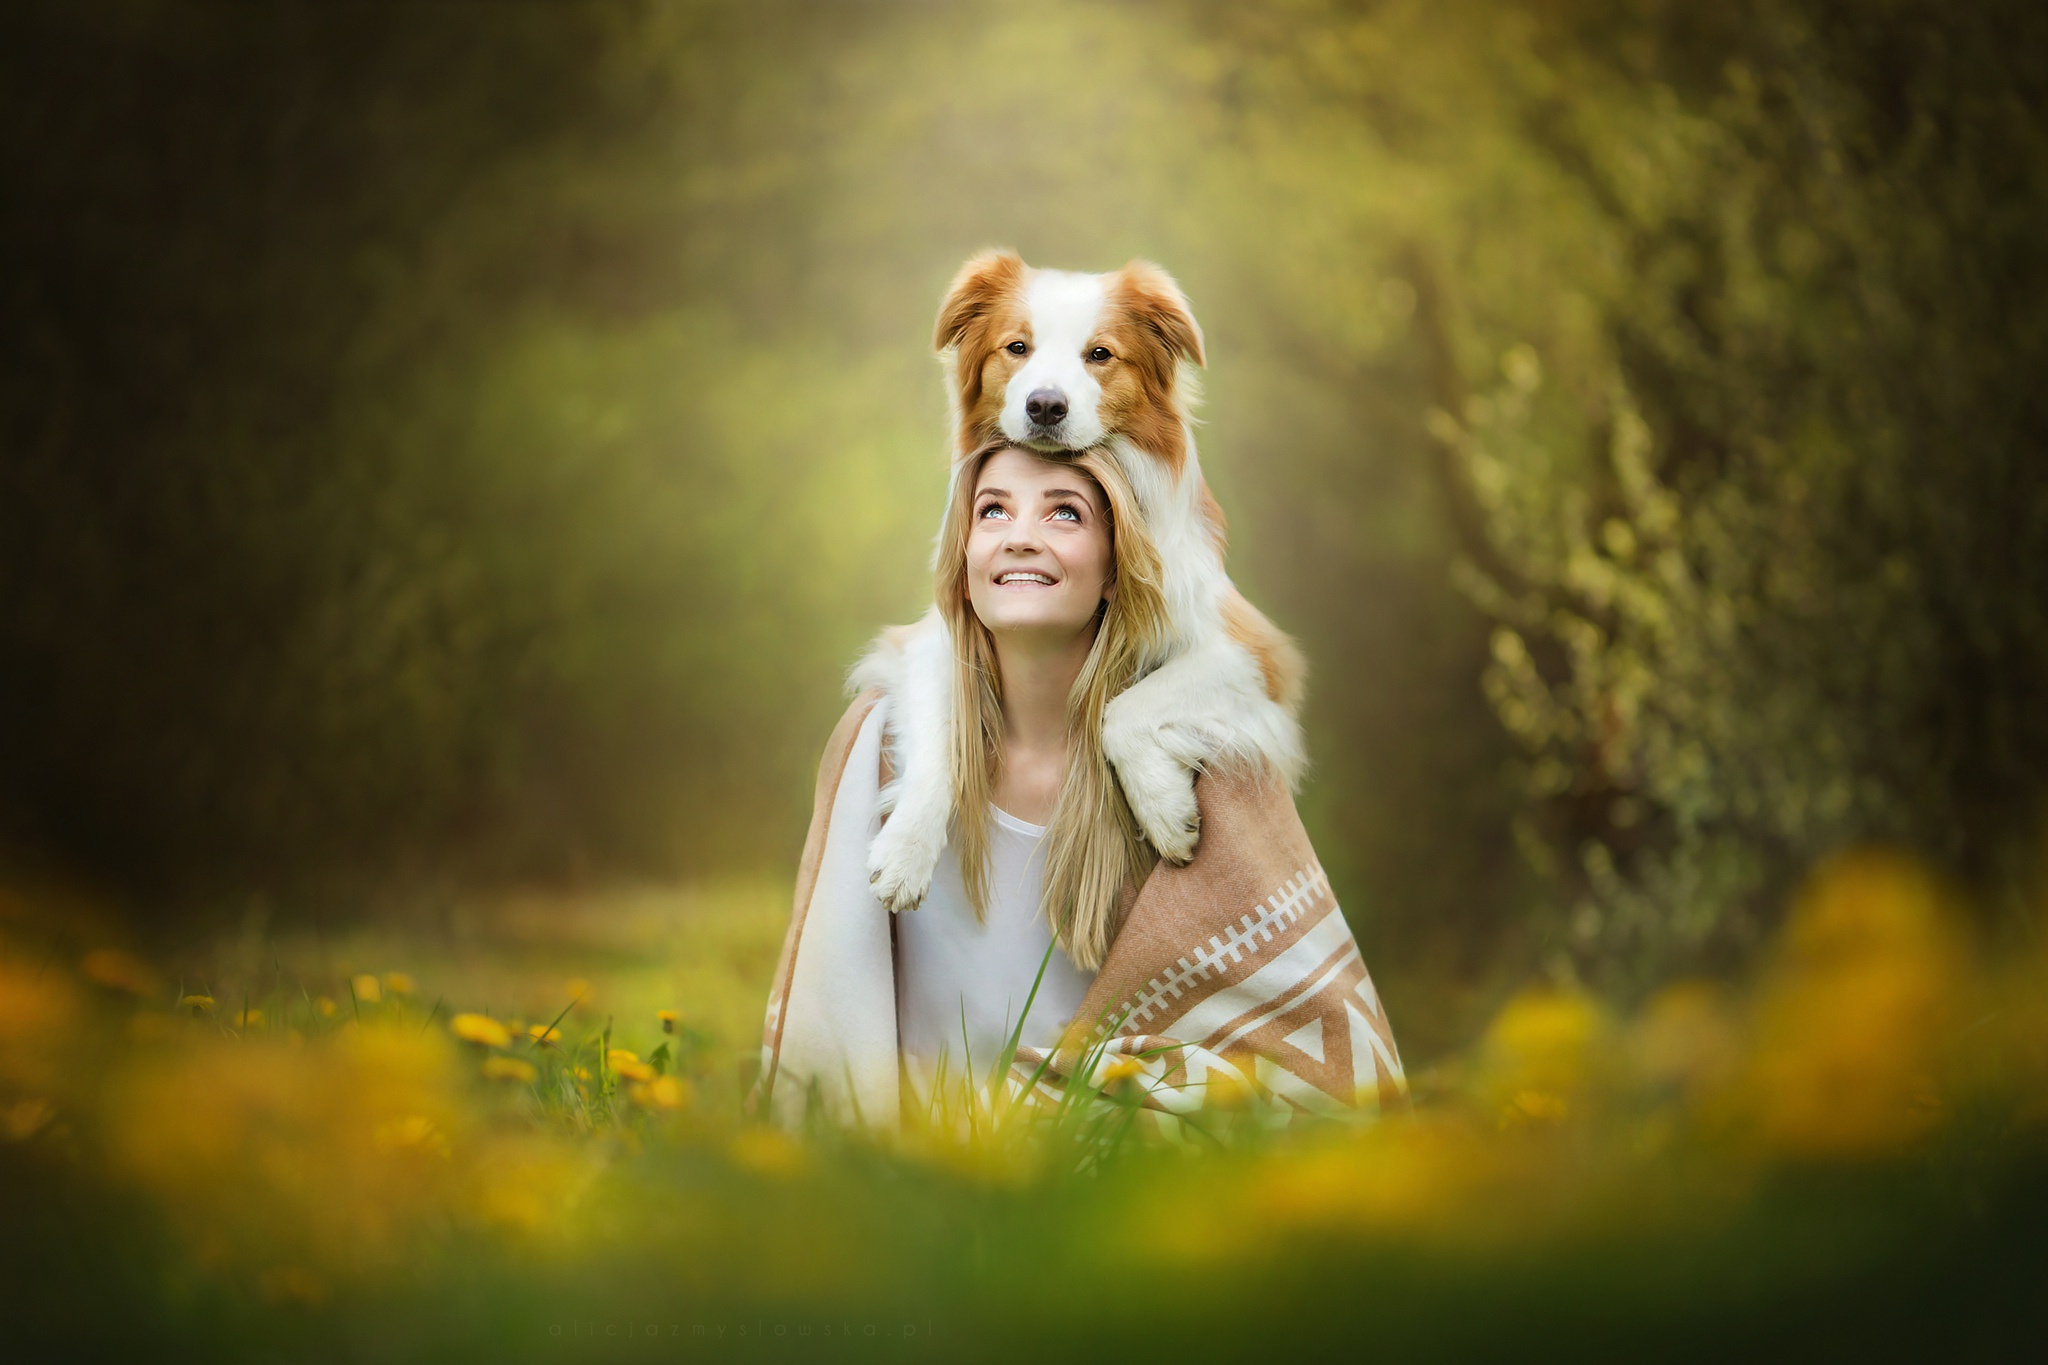 Cute Girl With Dog Hd Animals 4k Wallpapers Images Backgrounds Photos And Pictures